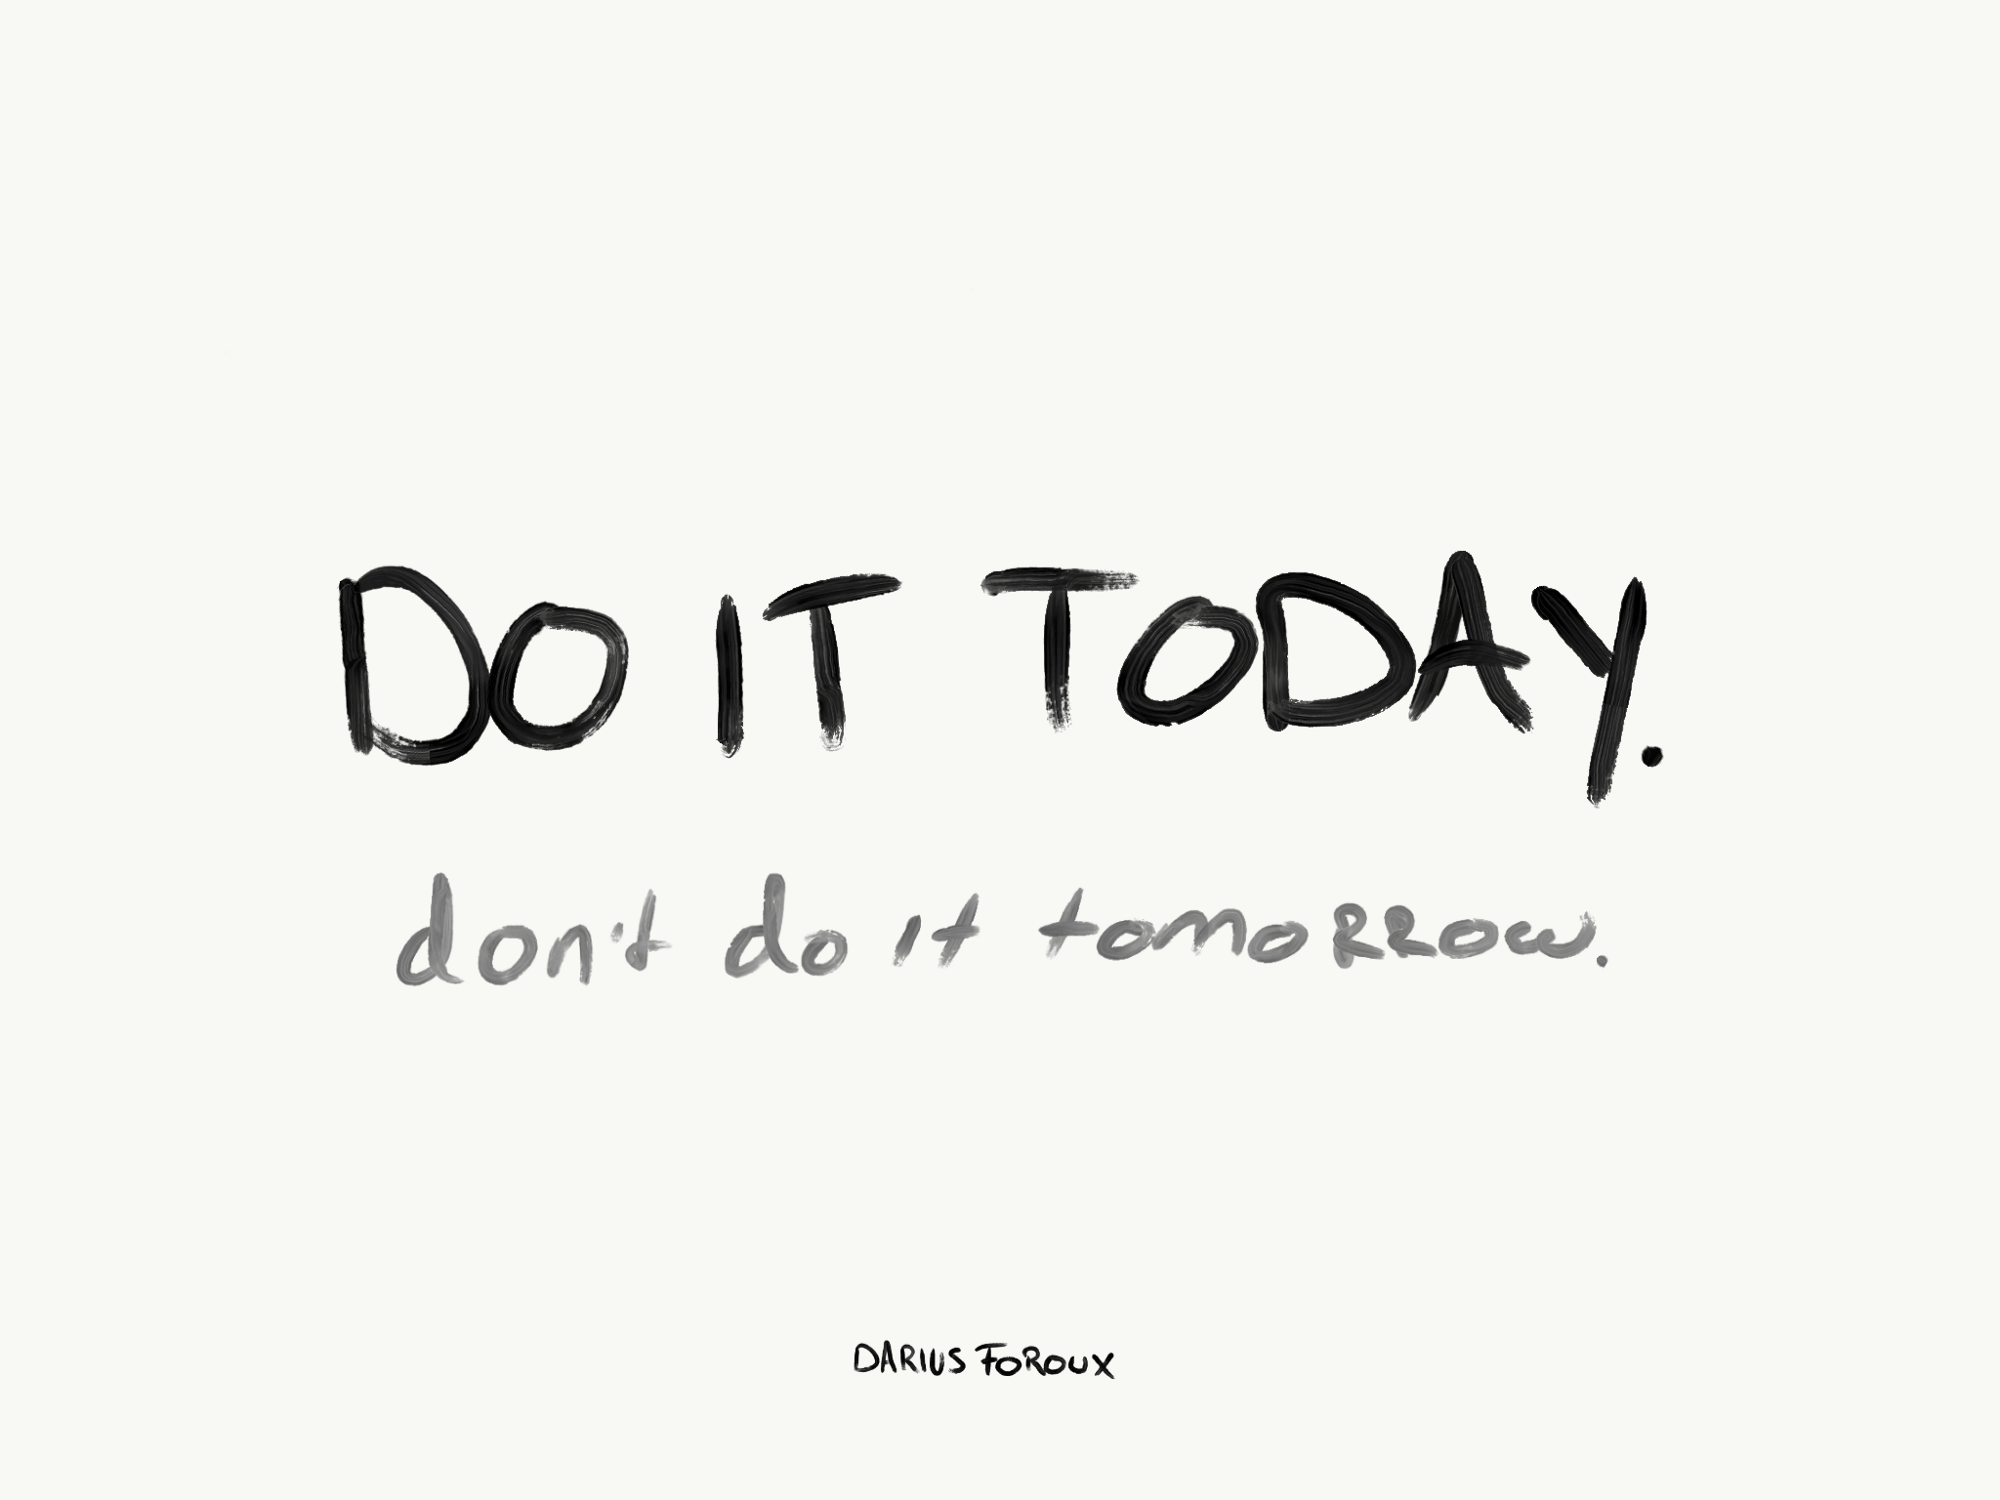 [Image] Don't wait 'till tomorrow